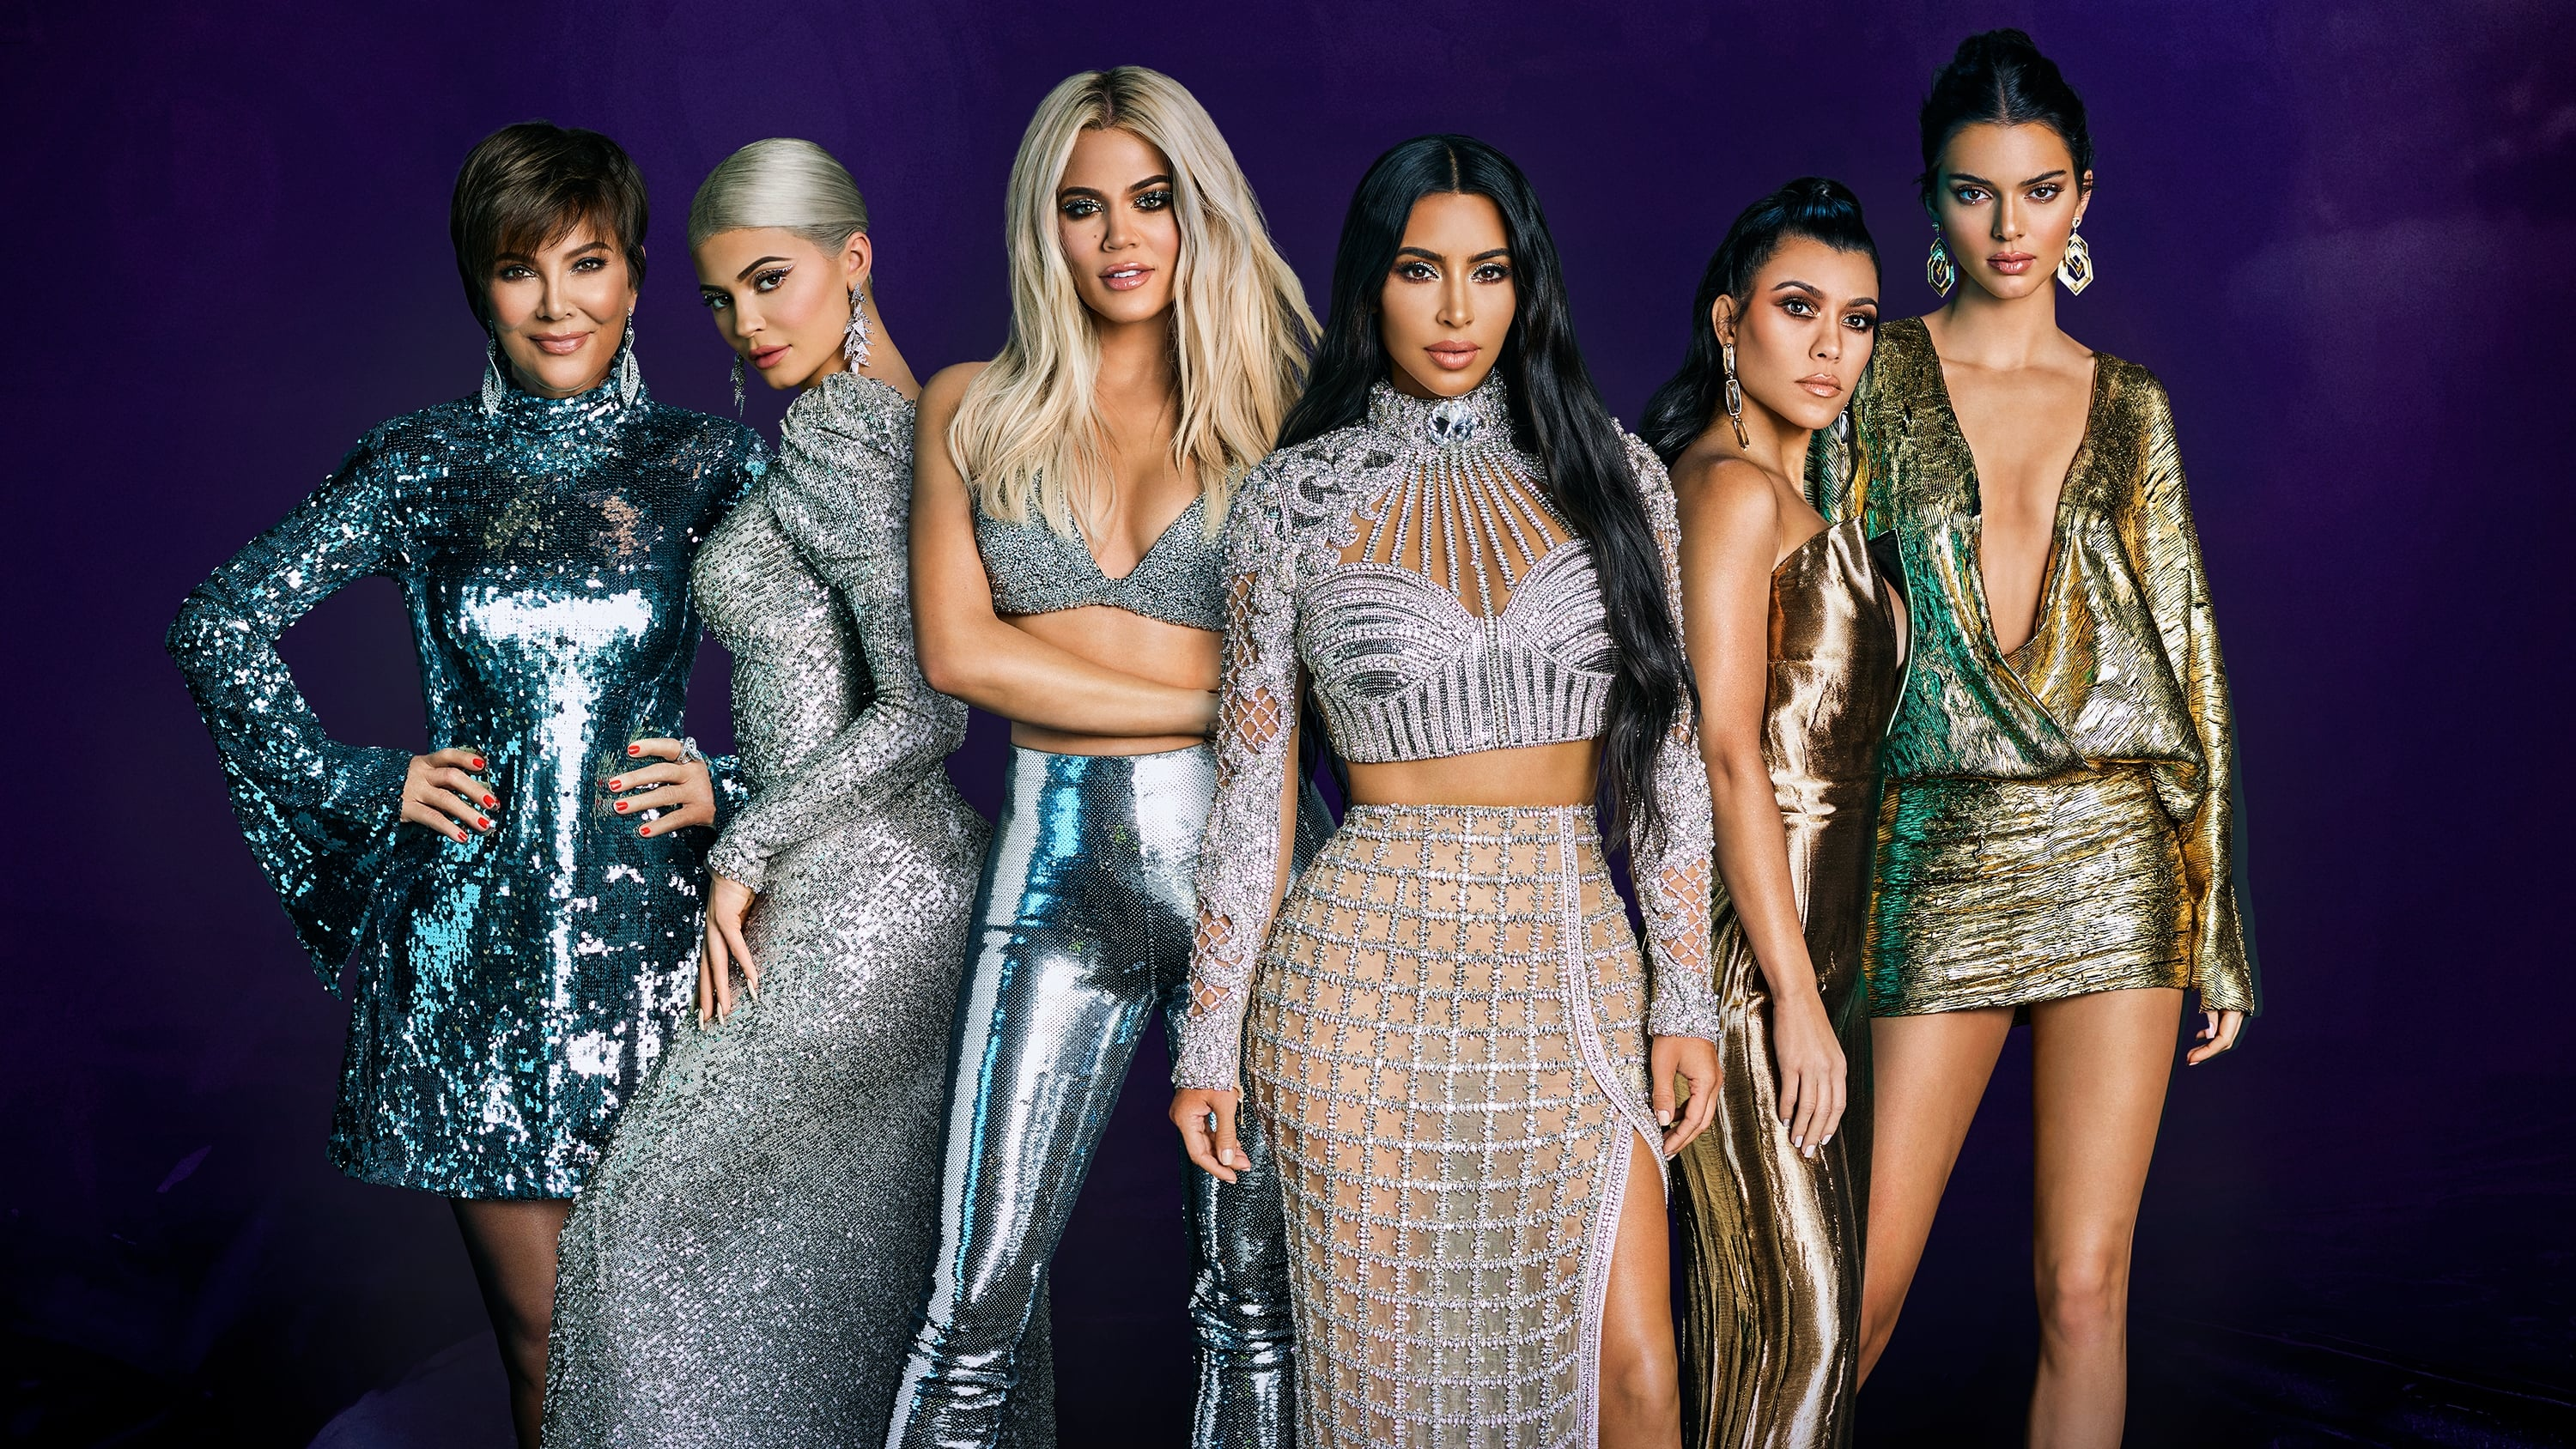 Keeping Up with the Kardashians - Season 10